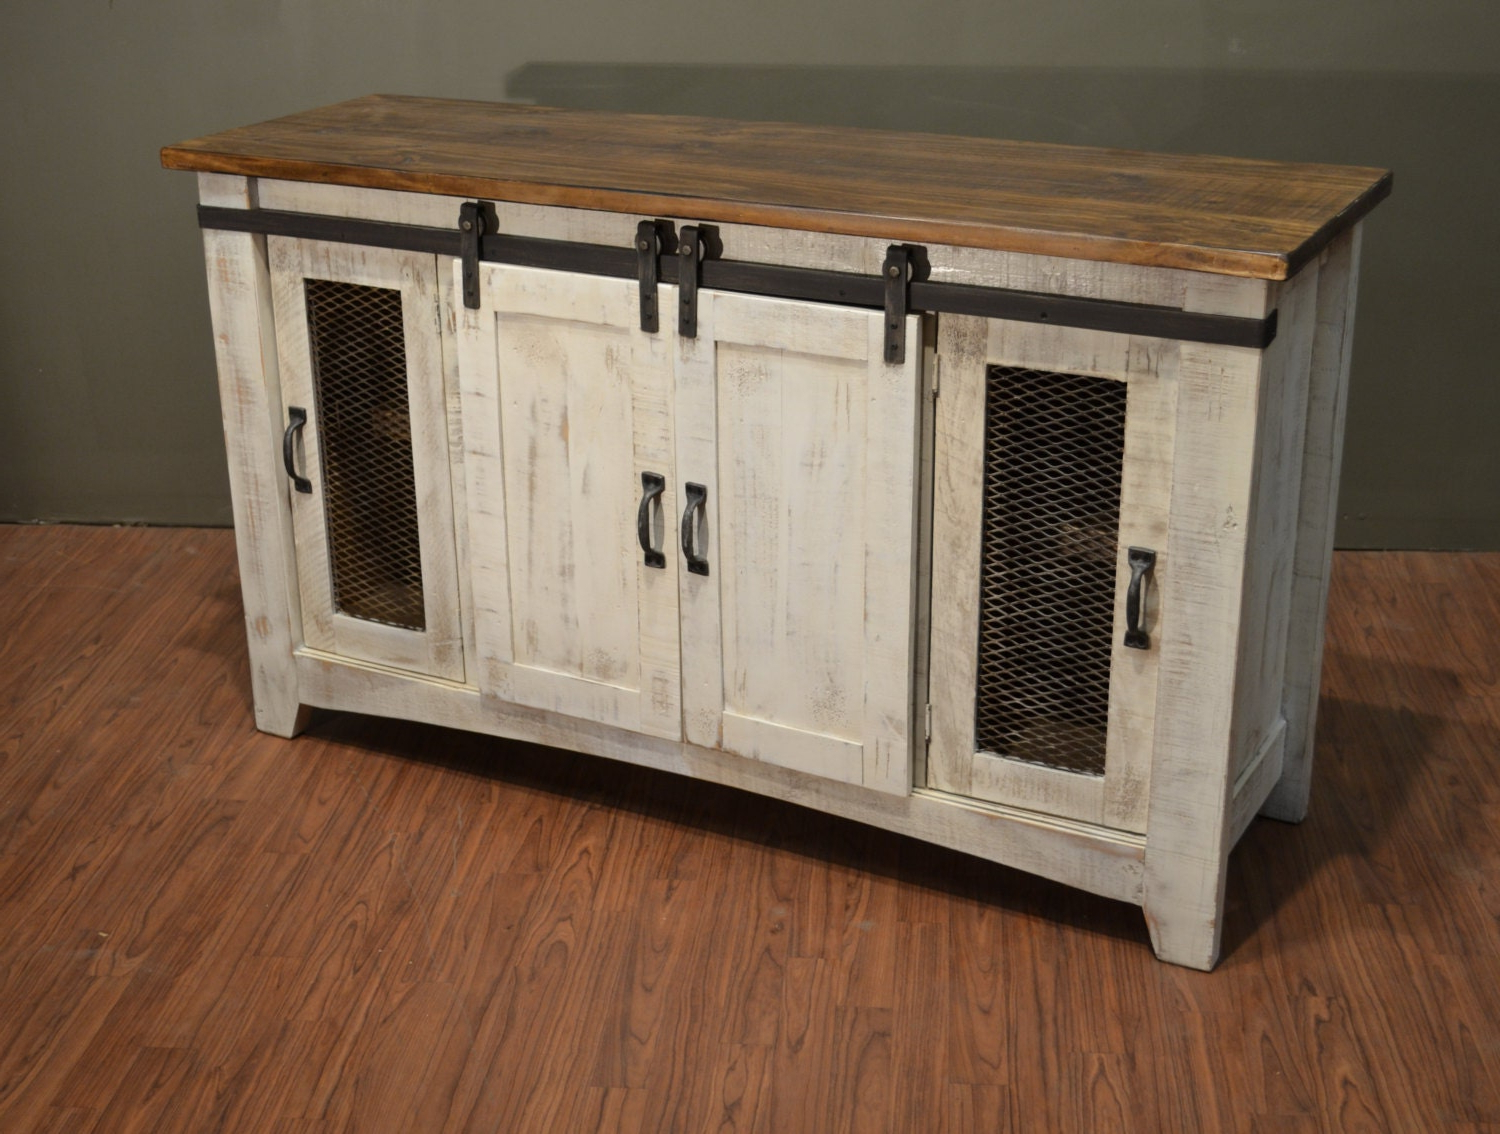 Rustic Solid Reclaimed Wood Tv Stand Media Center / Sideboard Inside Barn Door Wood Tv Stands (View 18 of 20)